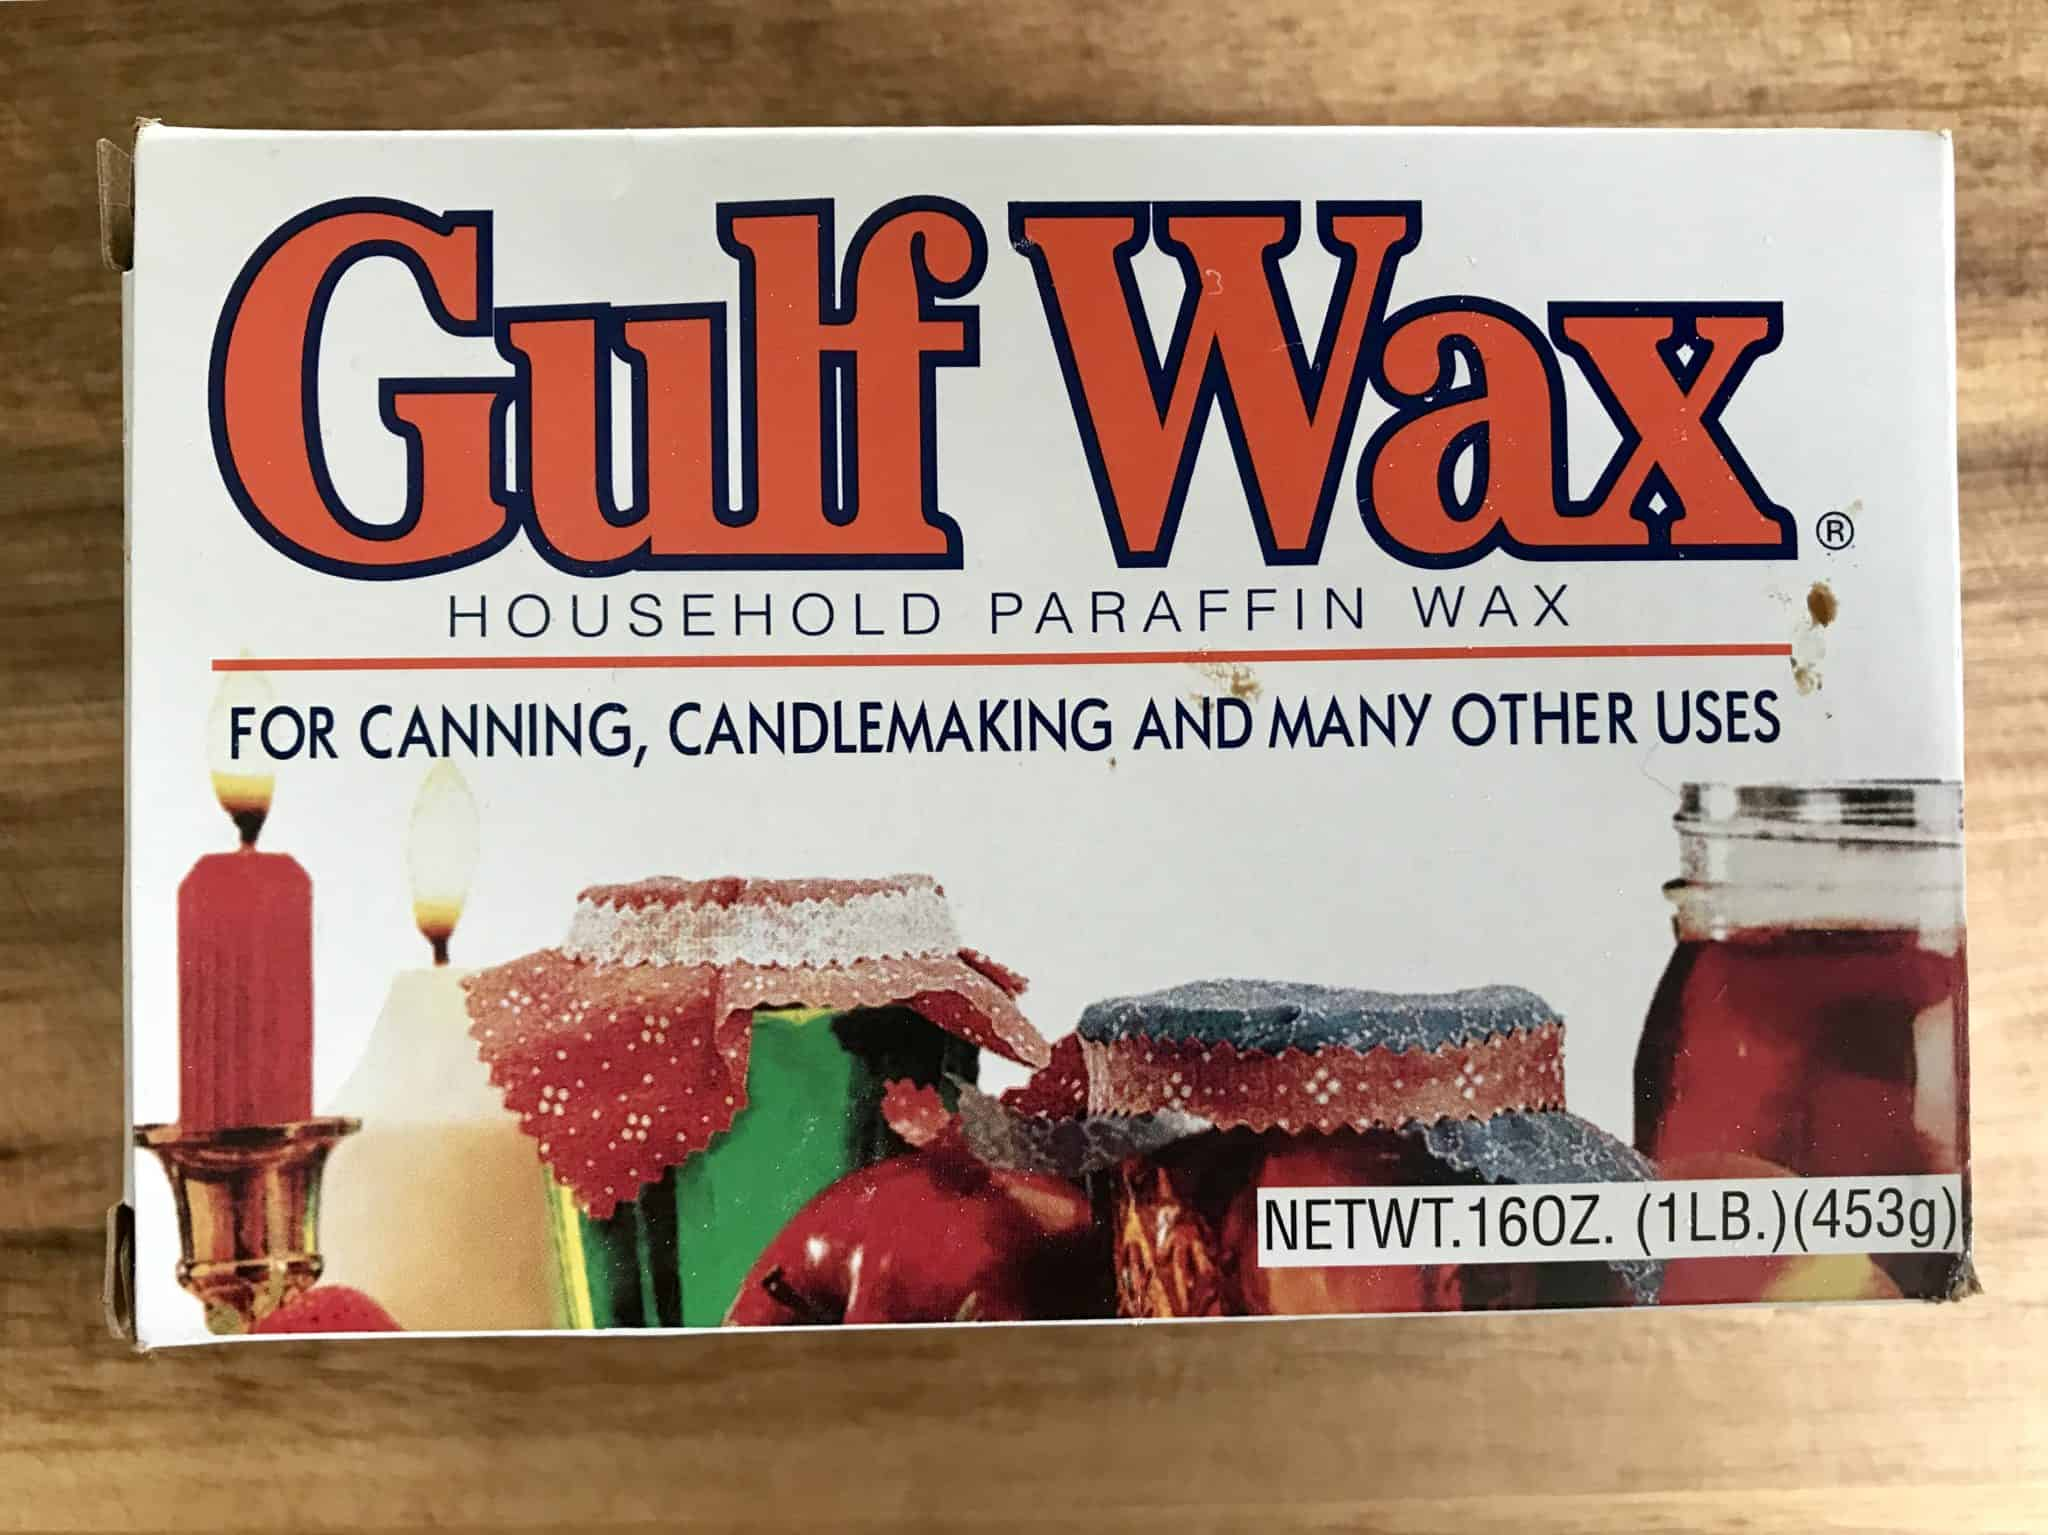 Gulf Wax box for reference